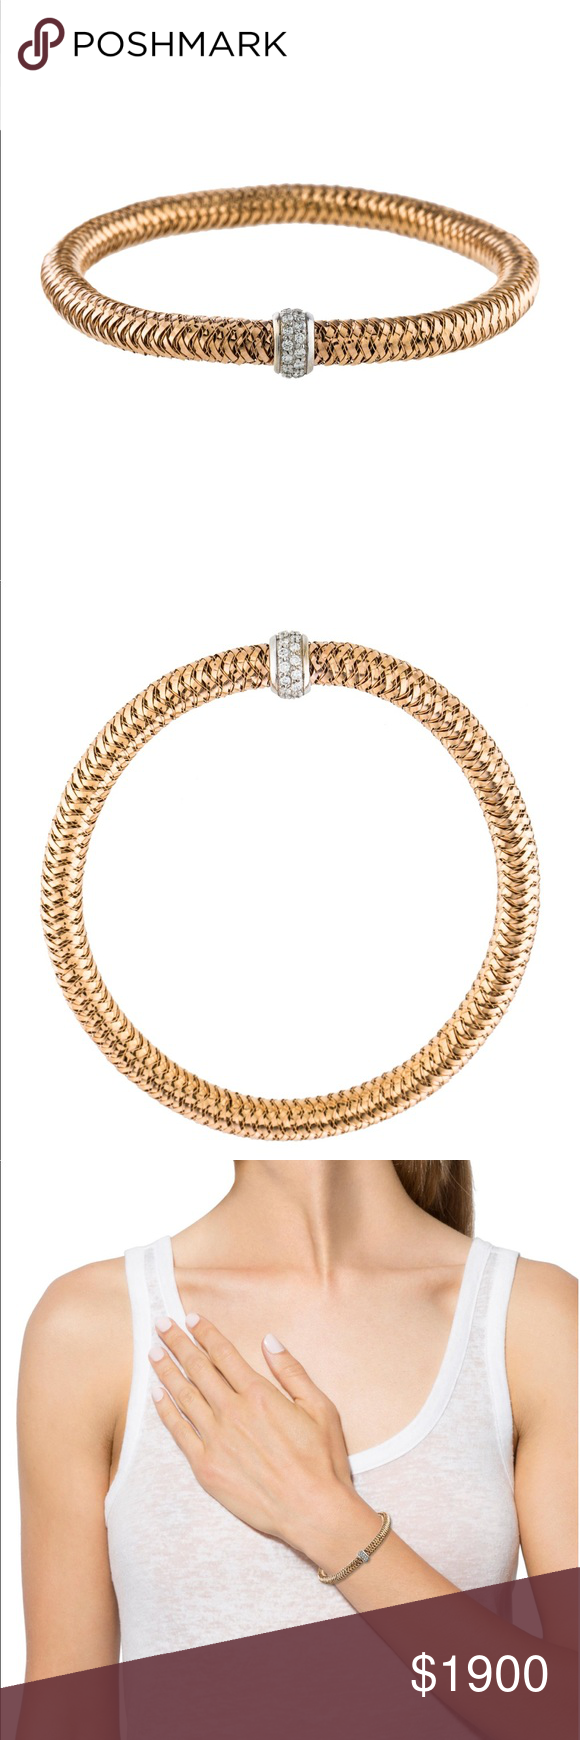 Roberto coin diamond bracelet k gold stretchy diamond bracelet